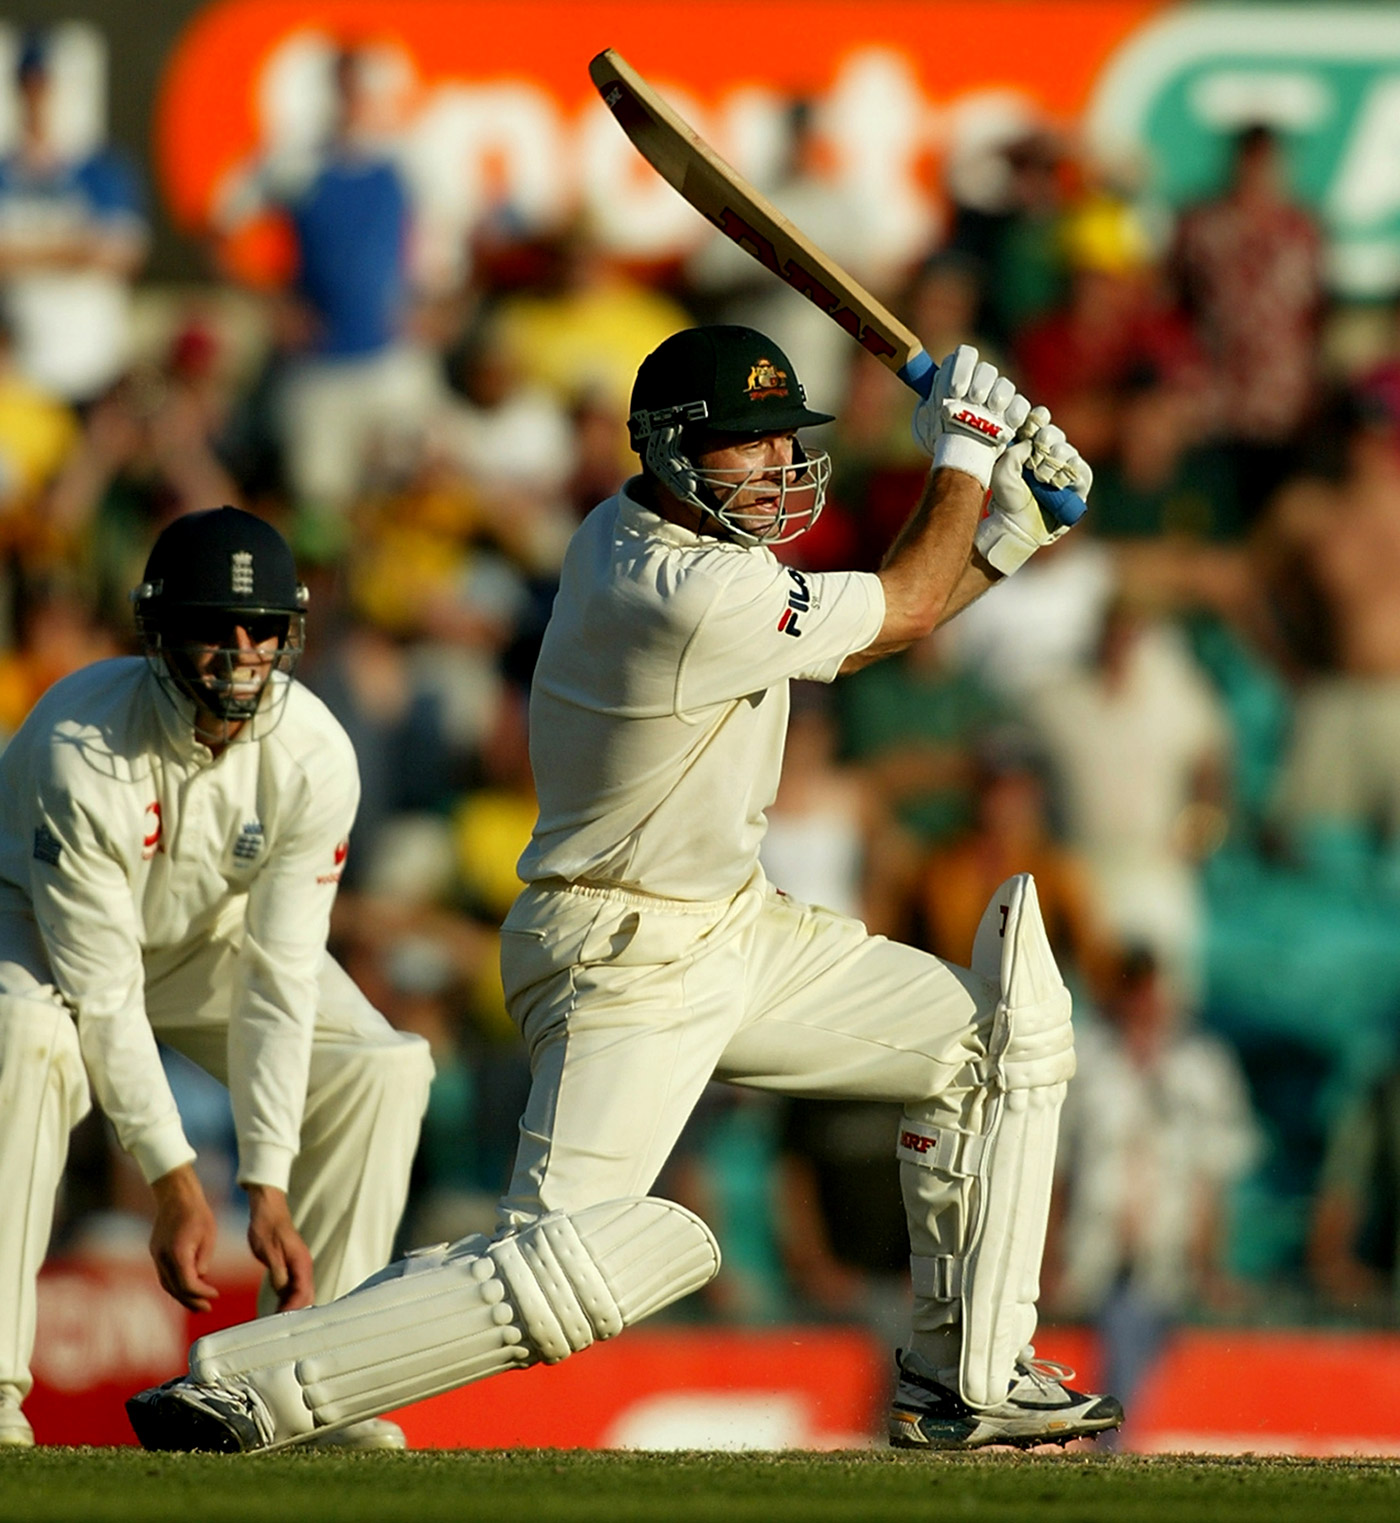 Steve Waugh changed his batting style over his career depending on the challenges he faced